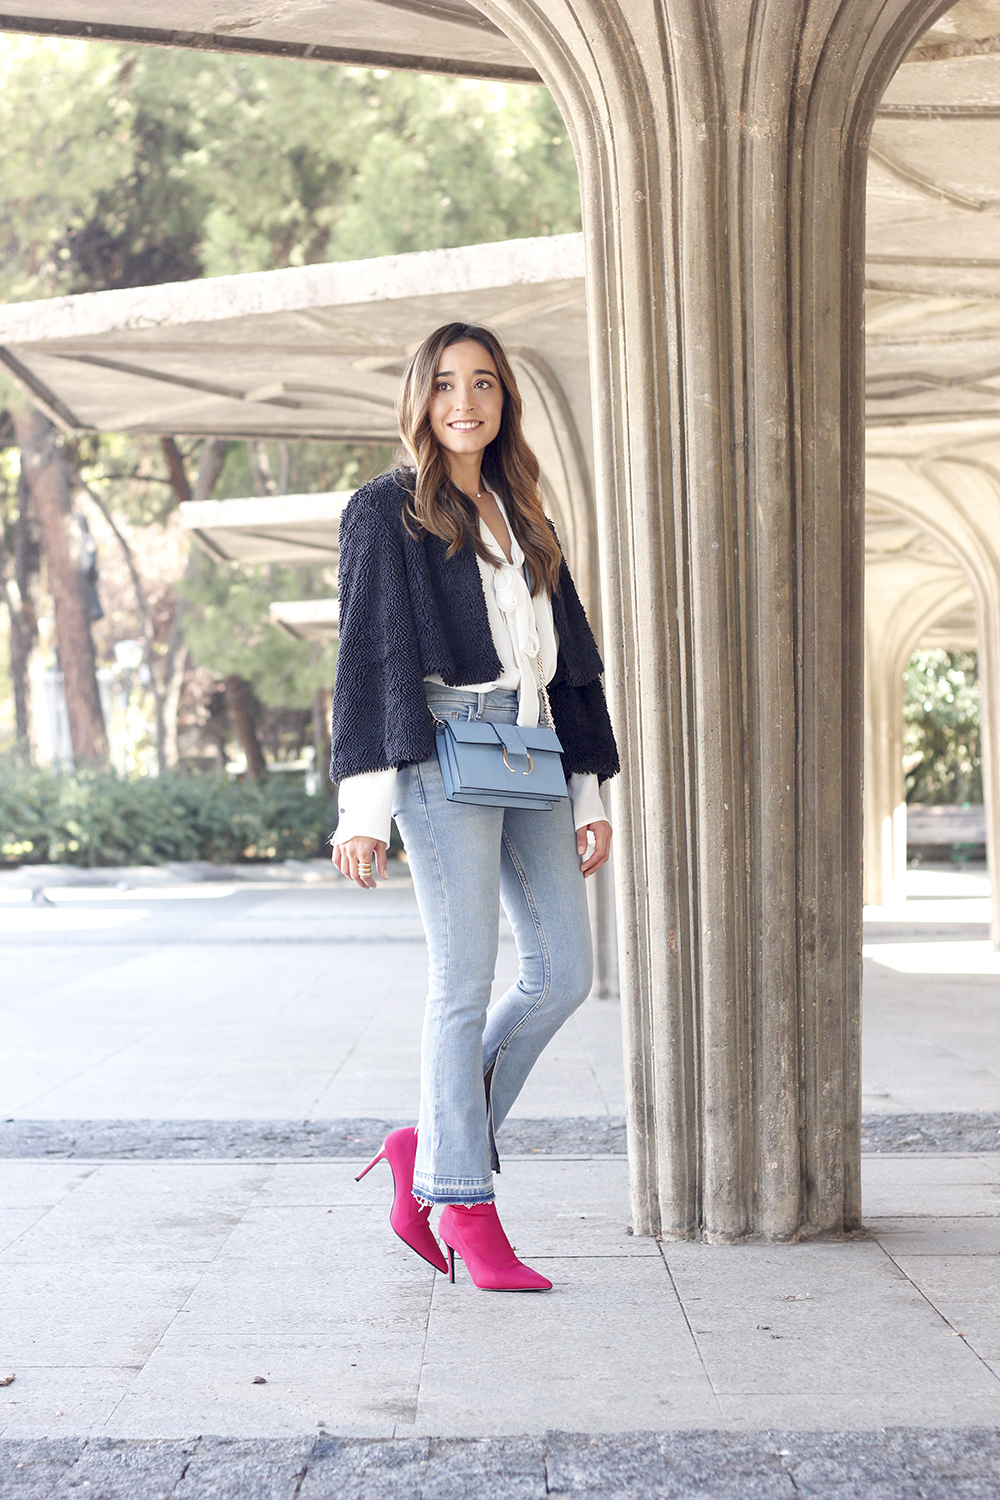 fucsia ankle boots flared jeans suede chaquet uterqüe white shirt outfit trend fashion01